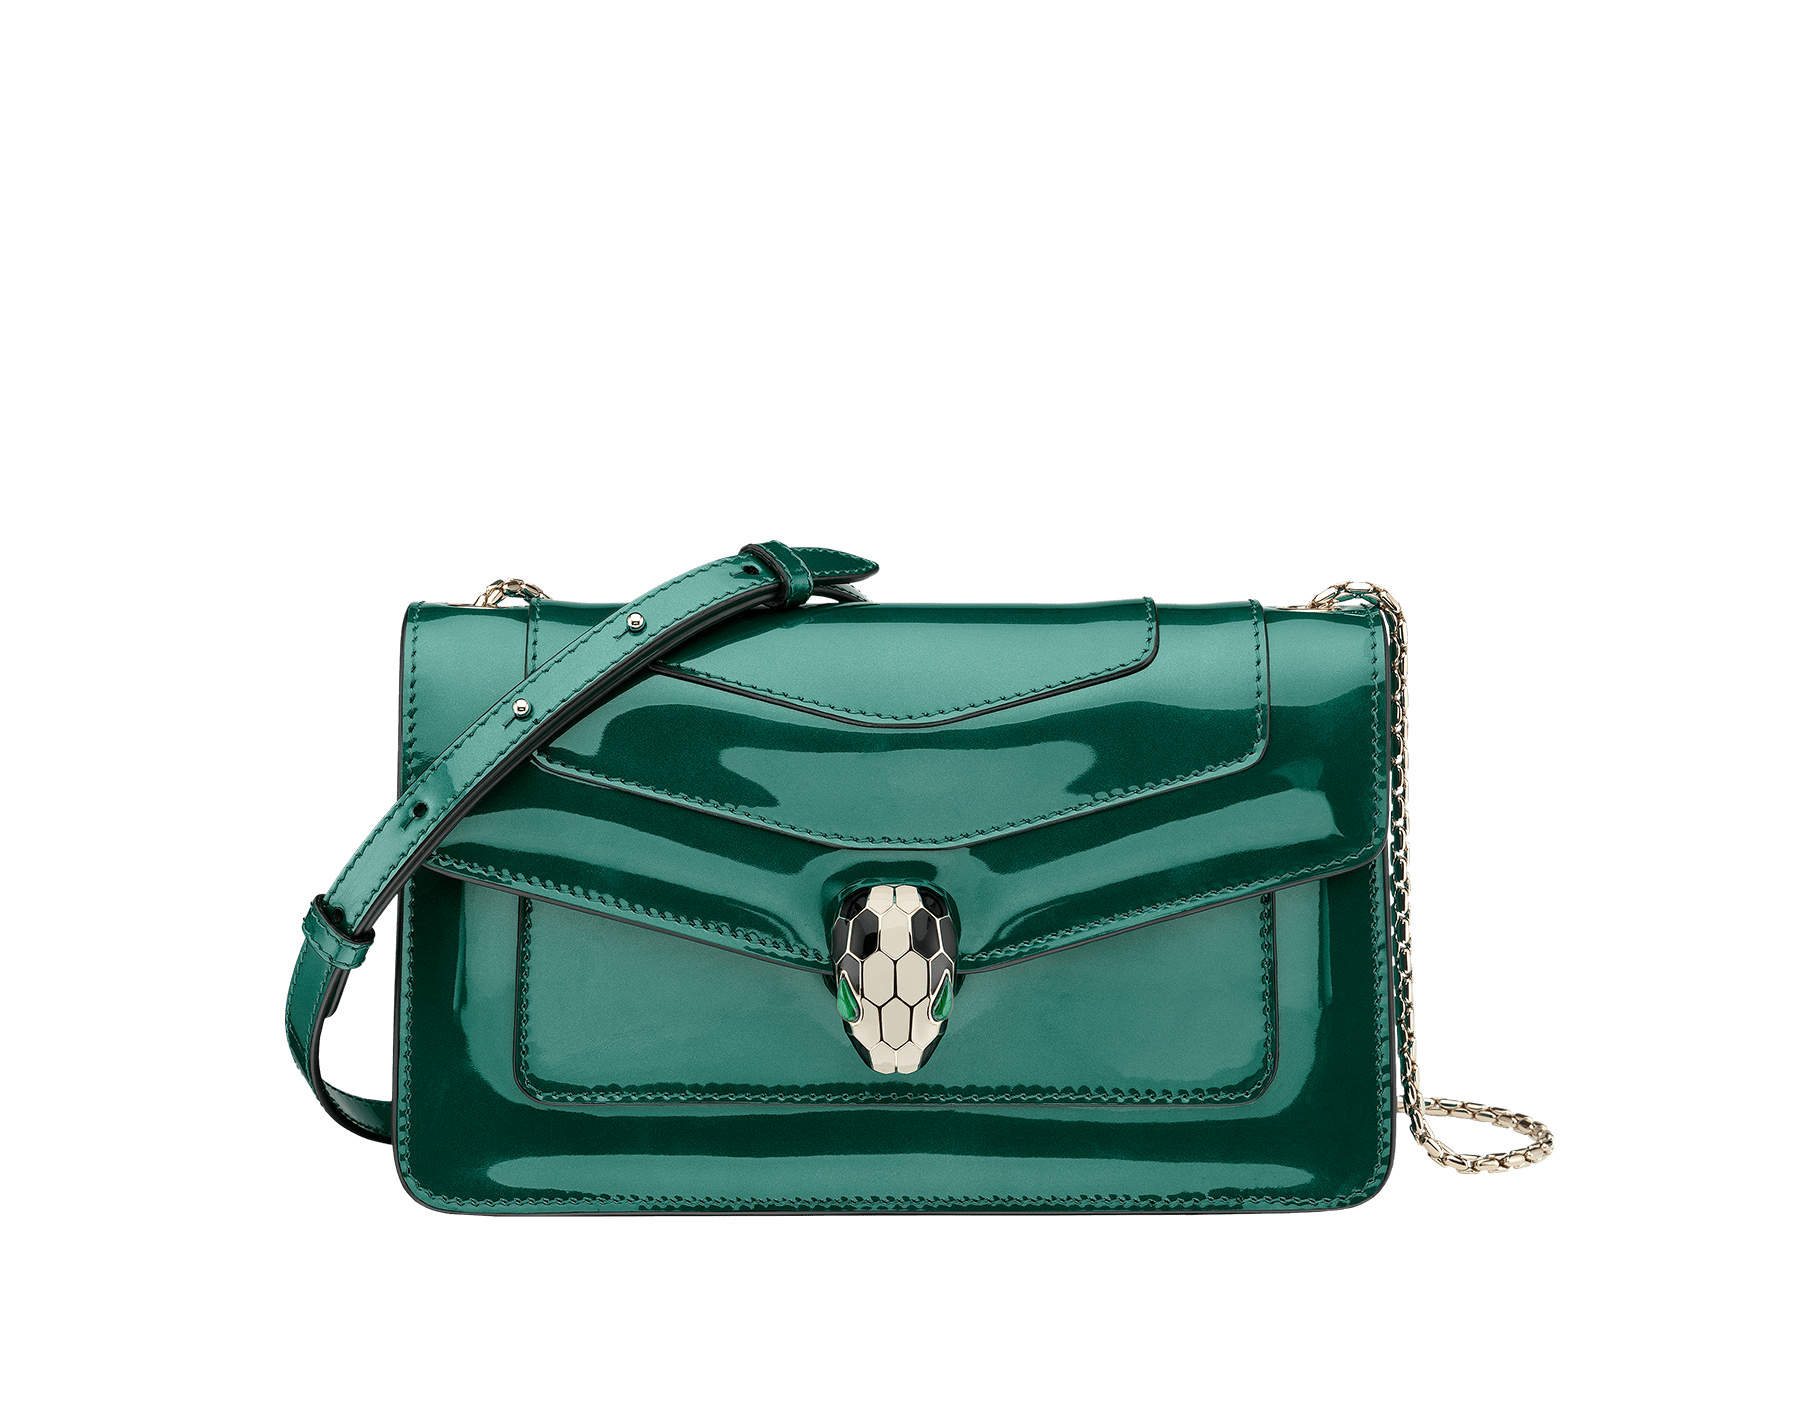 Flap cover bag Serpenti Forever in forest emerald brushed metallic calf leather. Brass light gold plated snake head closure in black and white enamel with eyes in green malachite. 283525 image 1